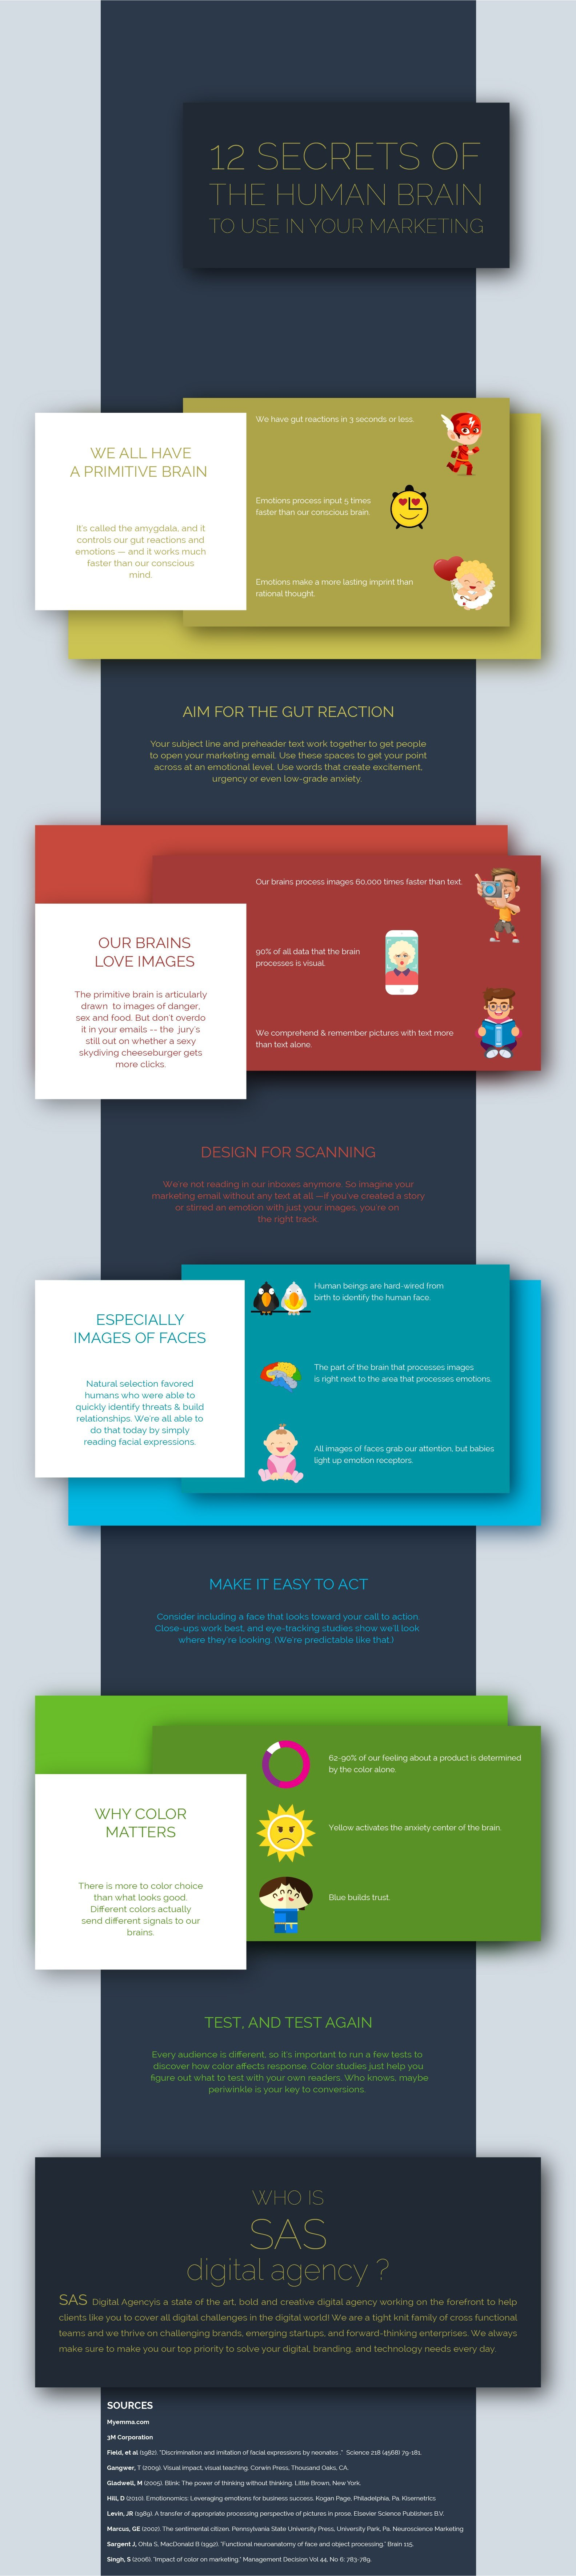 12 SECRETS OF THE HUMAN BRAIN TO USE IN YOUR MARKETING